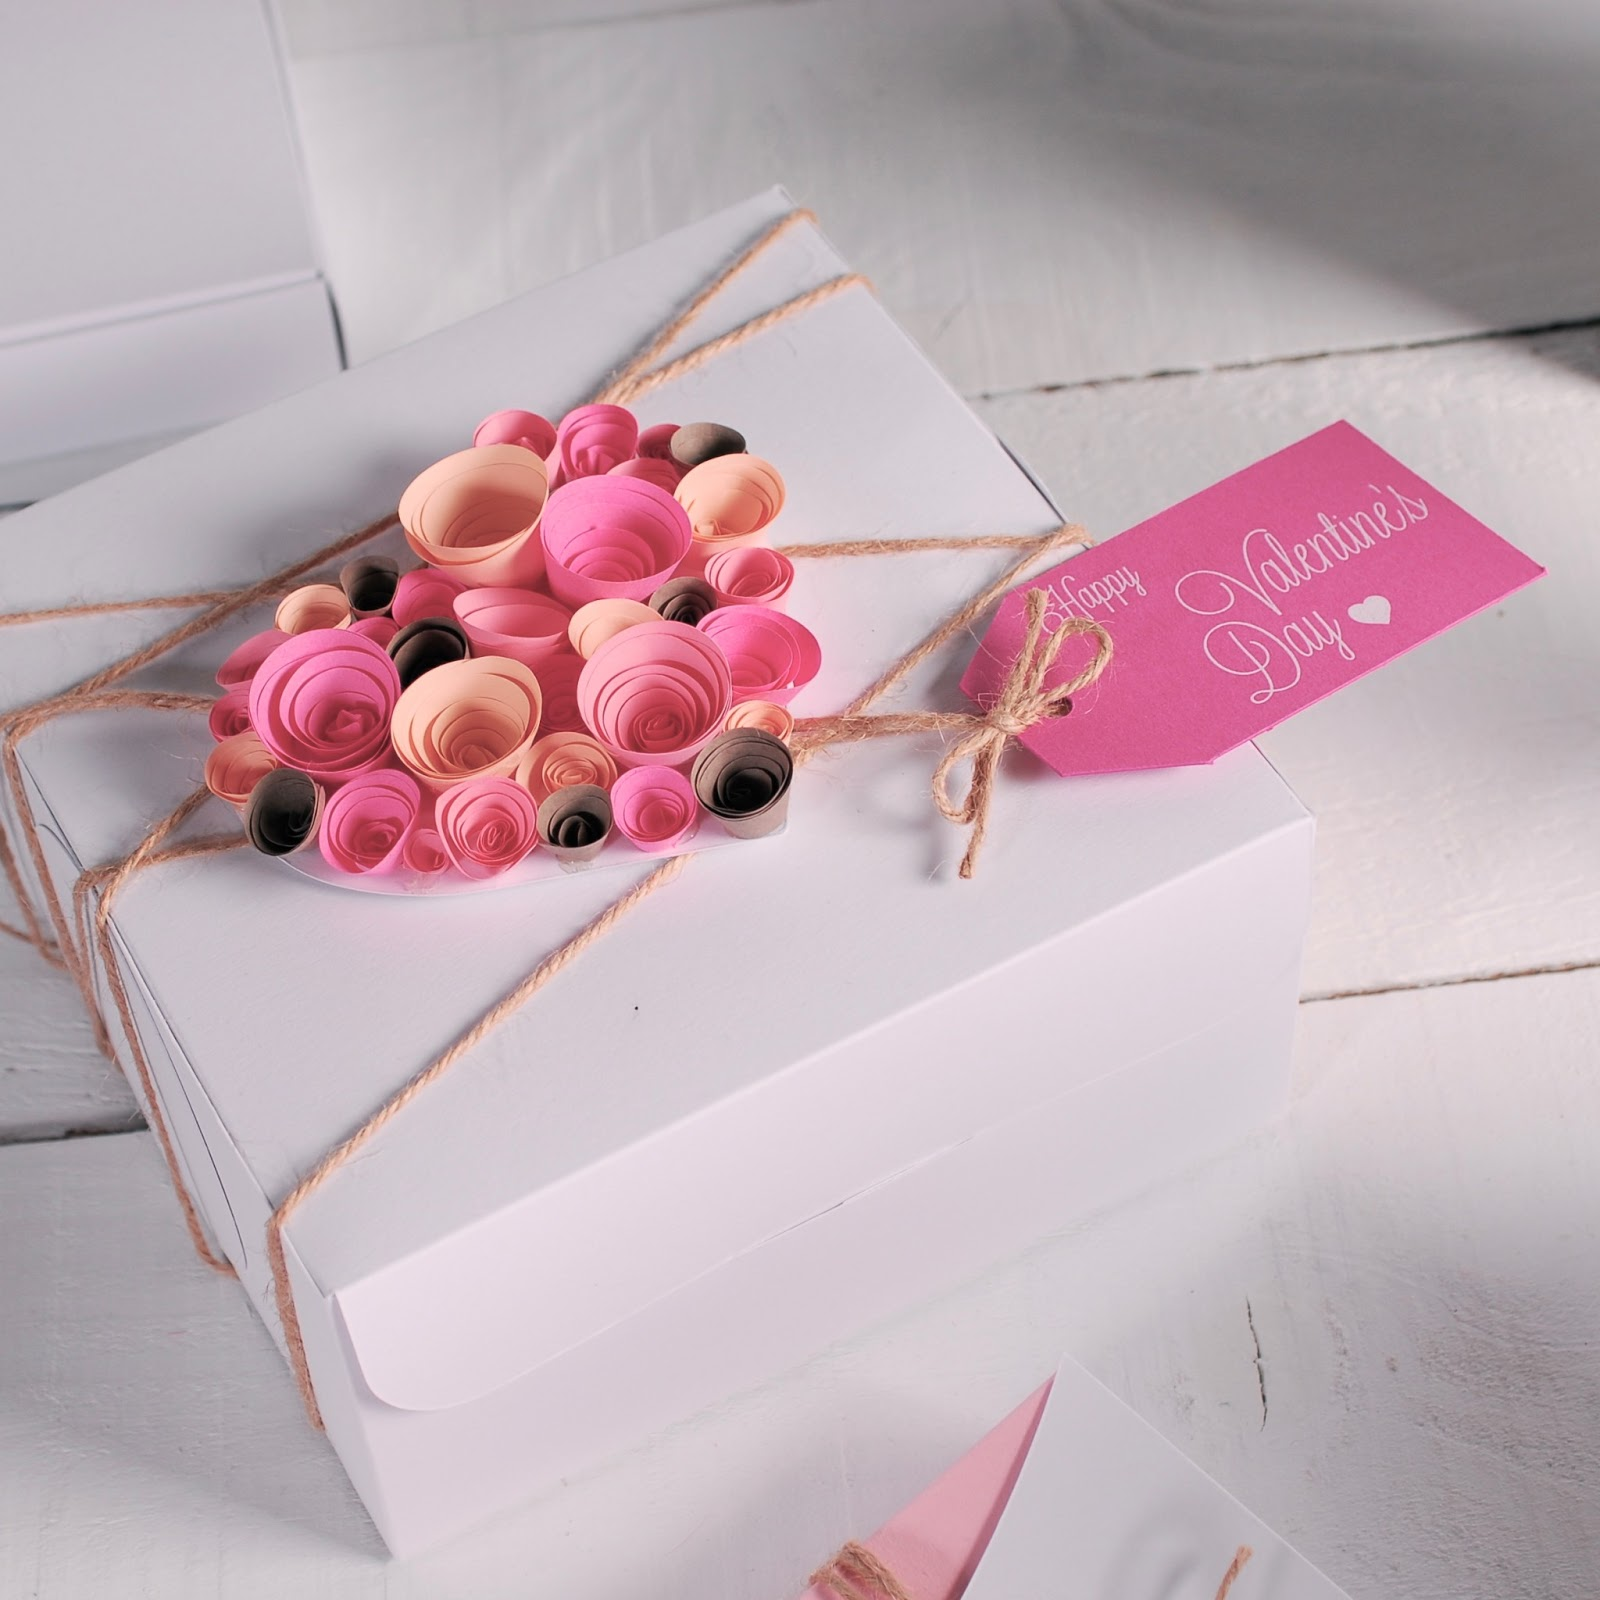 Gift Wrapping Ideas Part - 47: Gift Wrapping Ideas Box Packaging Pink Romantic Card Message